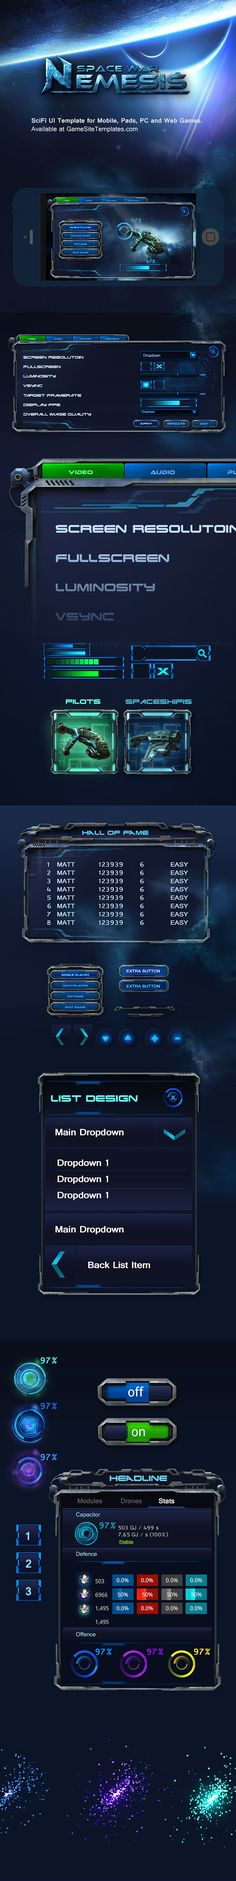 SpaceWar-SciFi-Mobile-Game-GUI-Interface-04 by karsten.deviantart.com on @DeviantArt